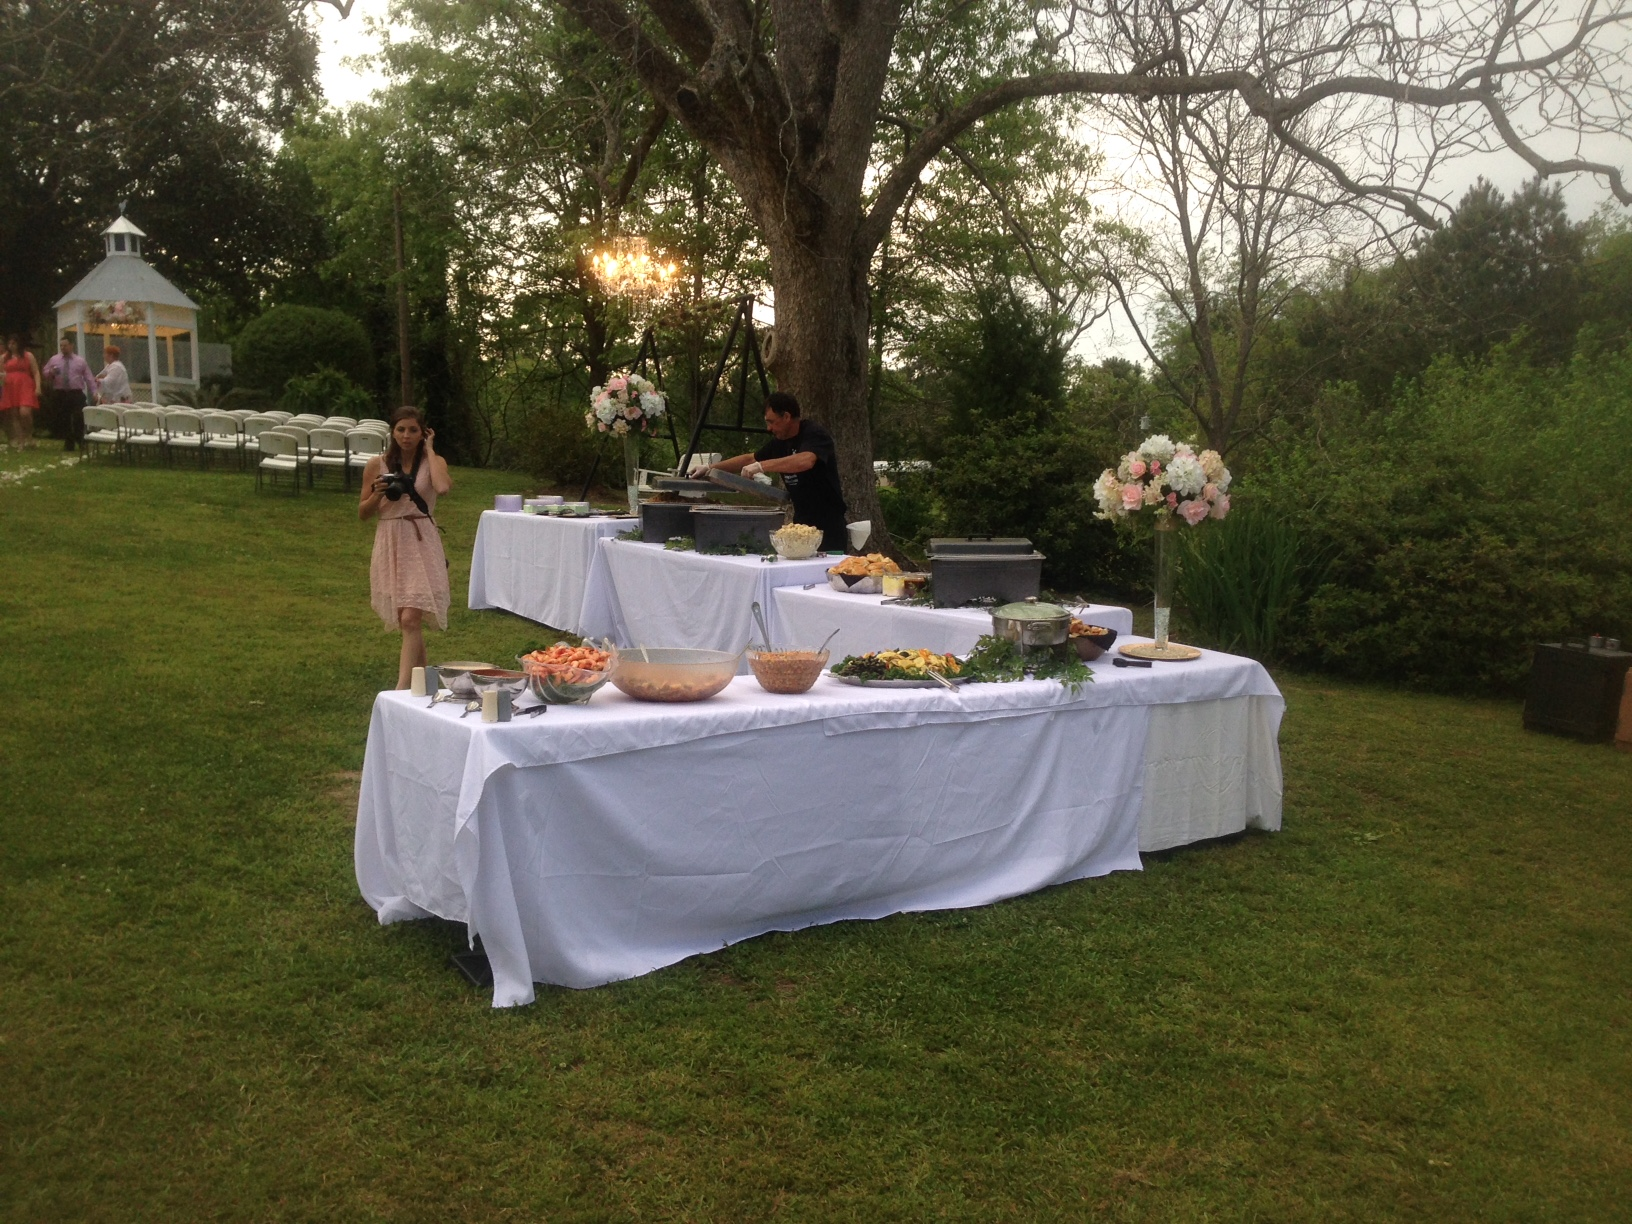 food set up buffet style on two long tables